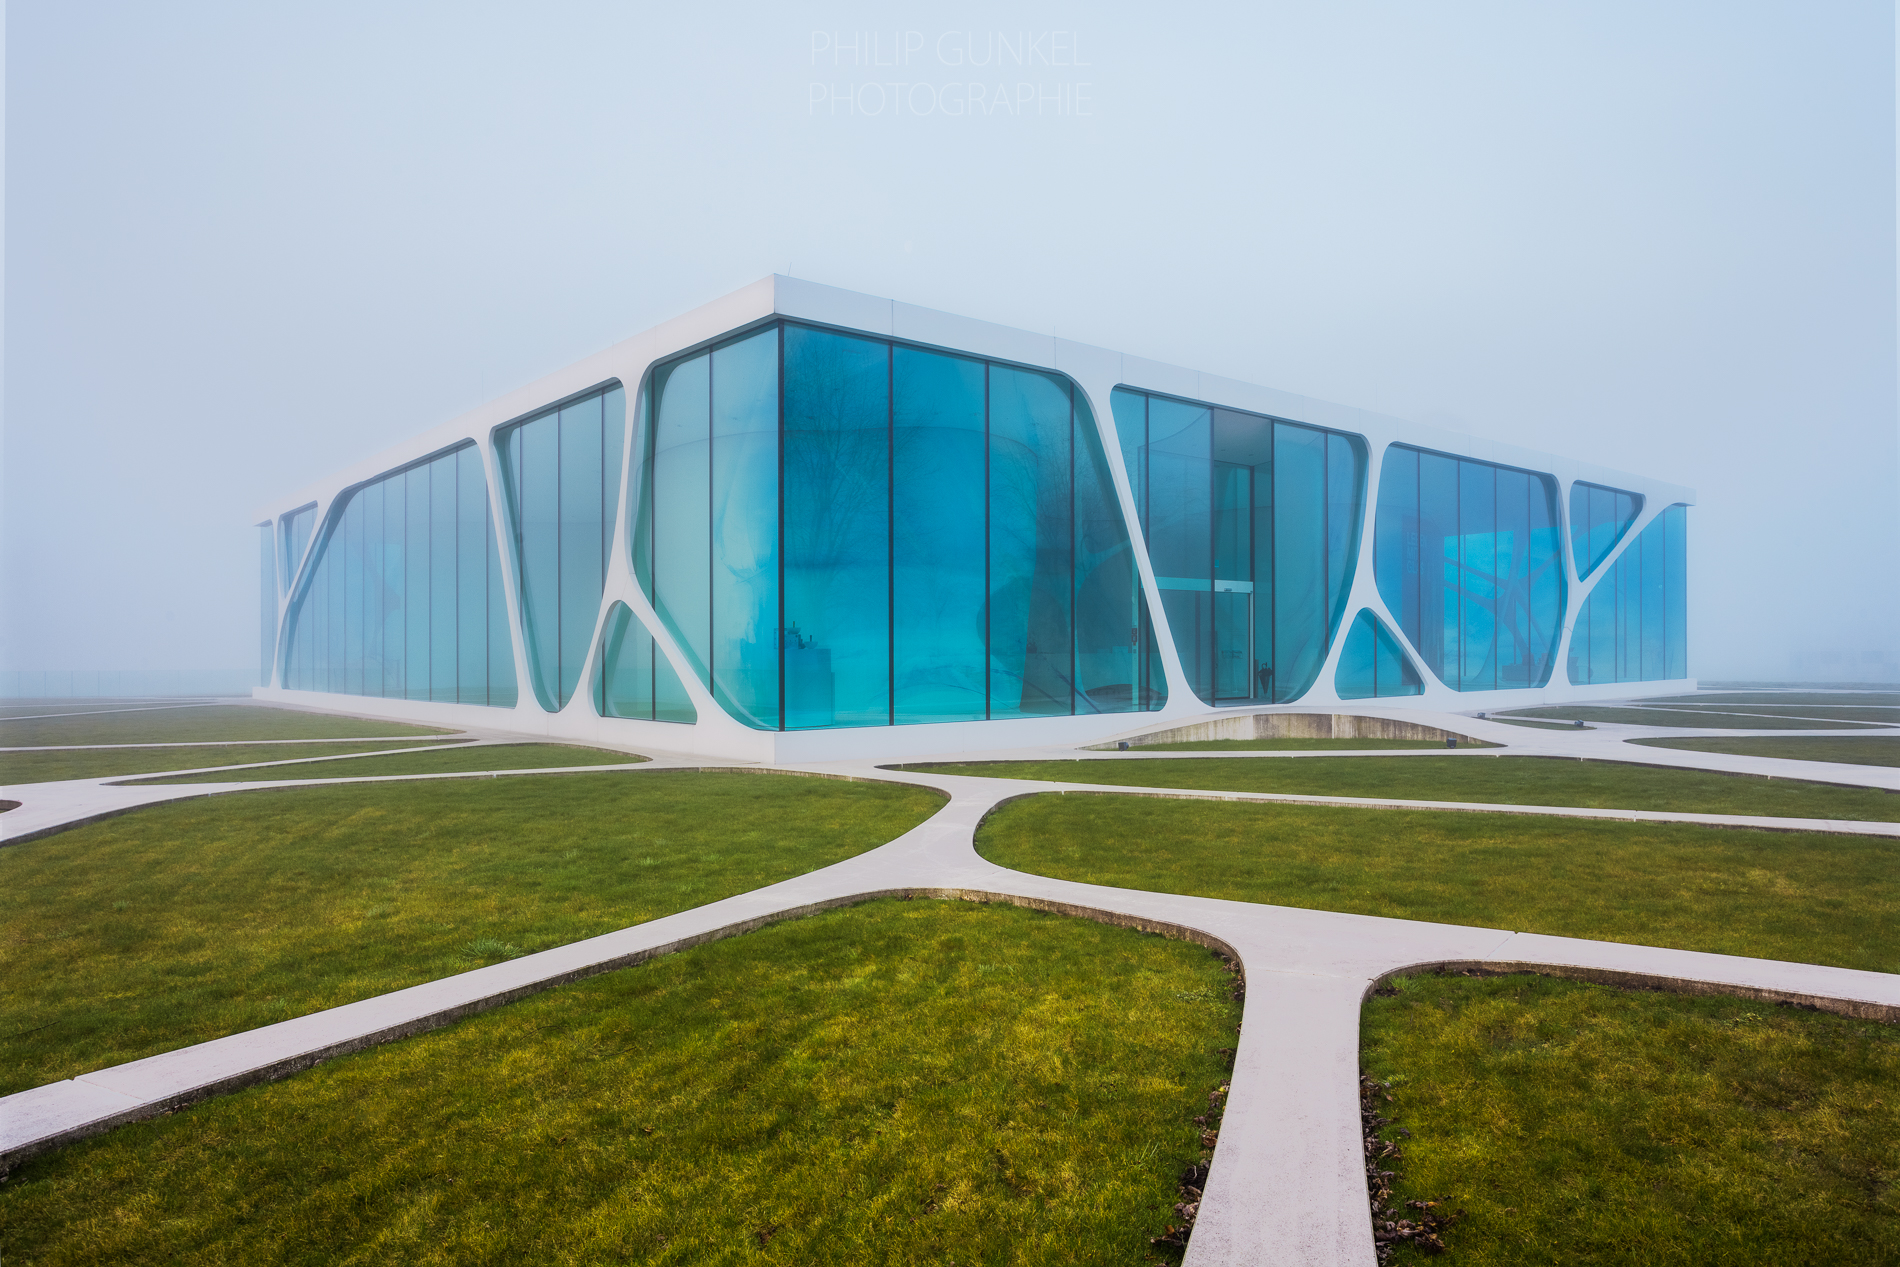 Glass Cube_ Philip_Gunkel_2015_03